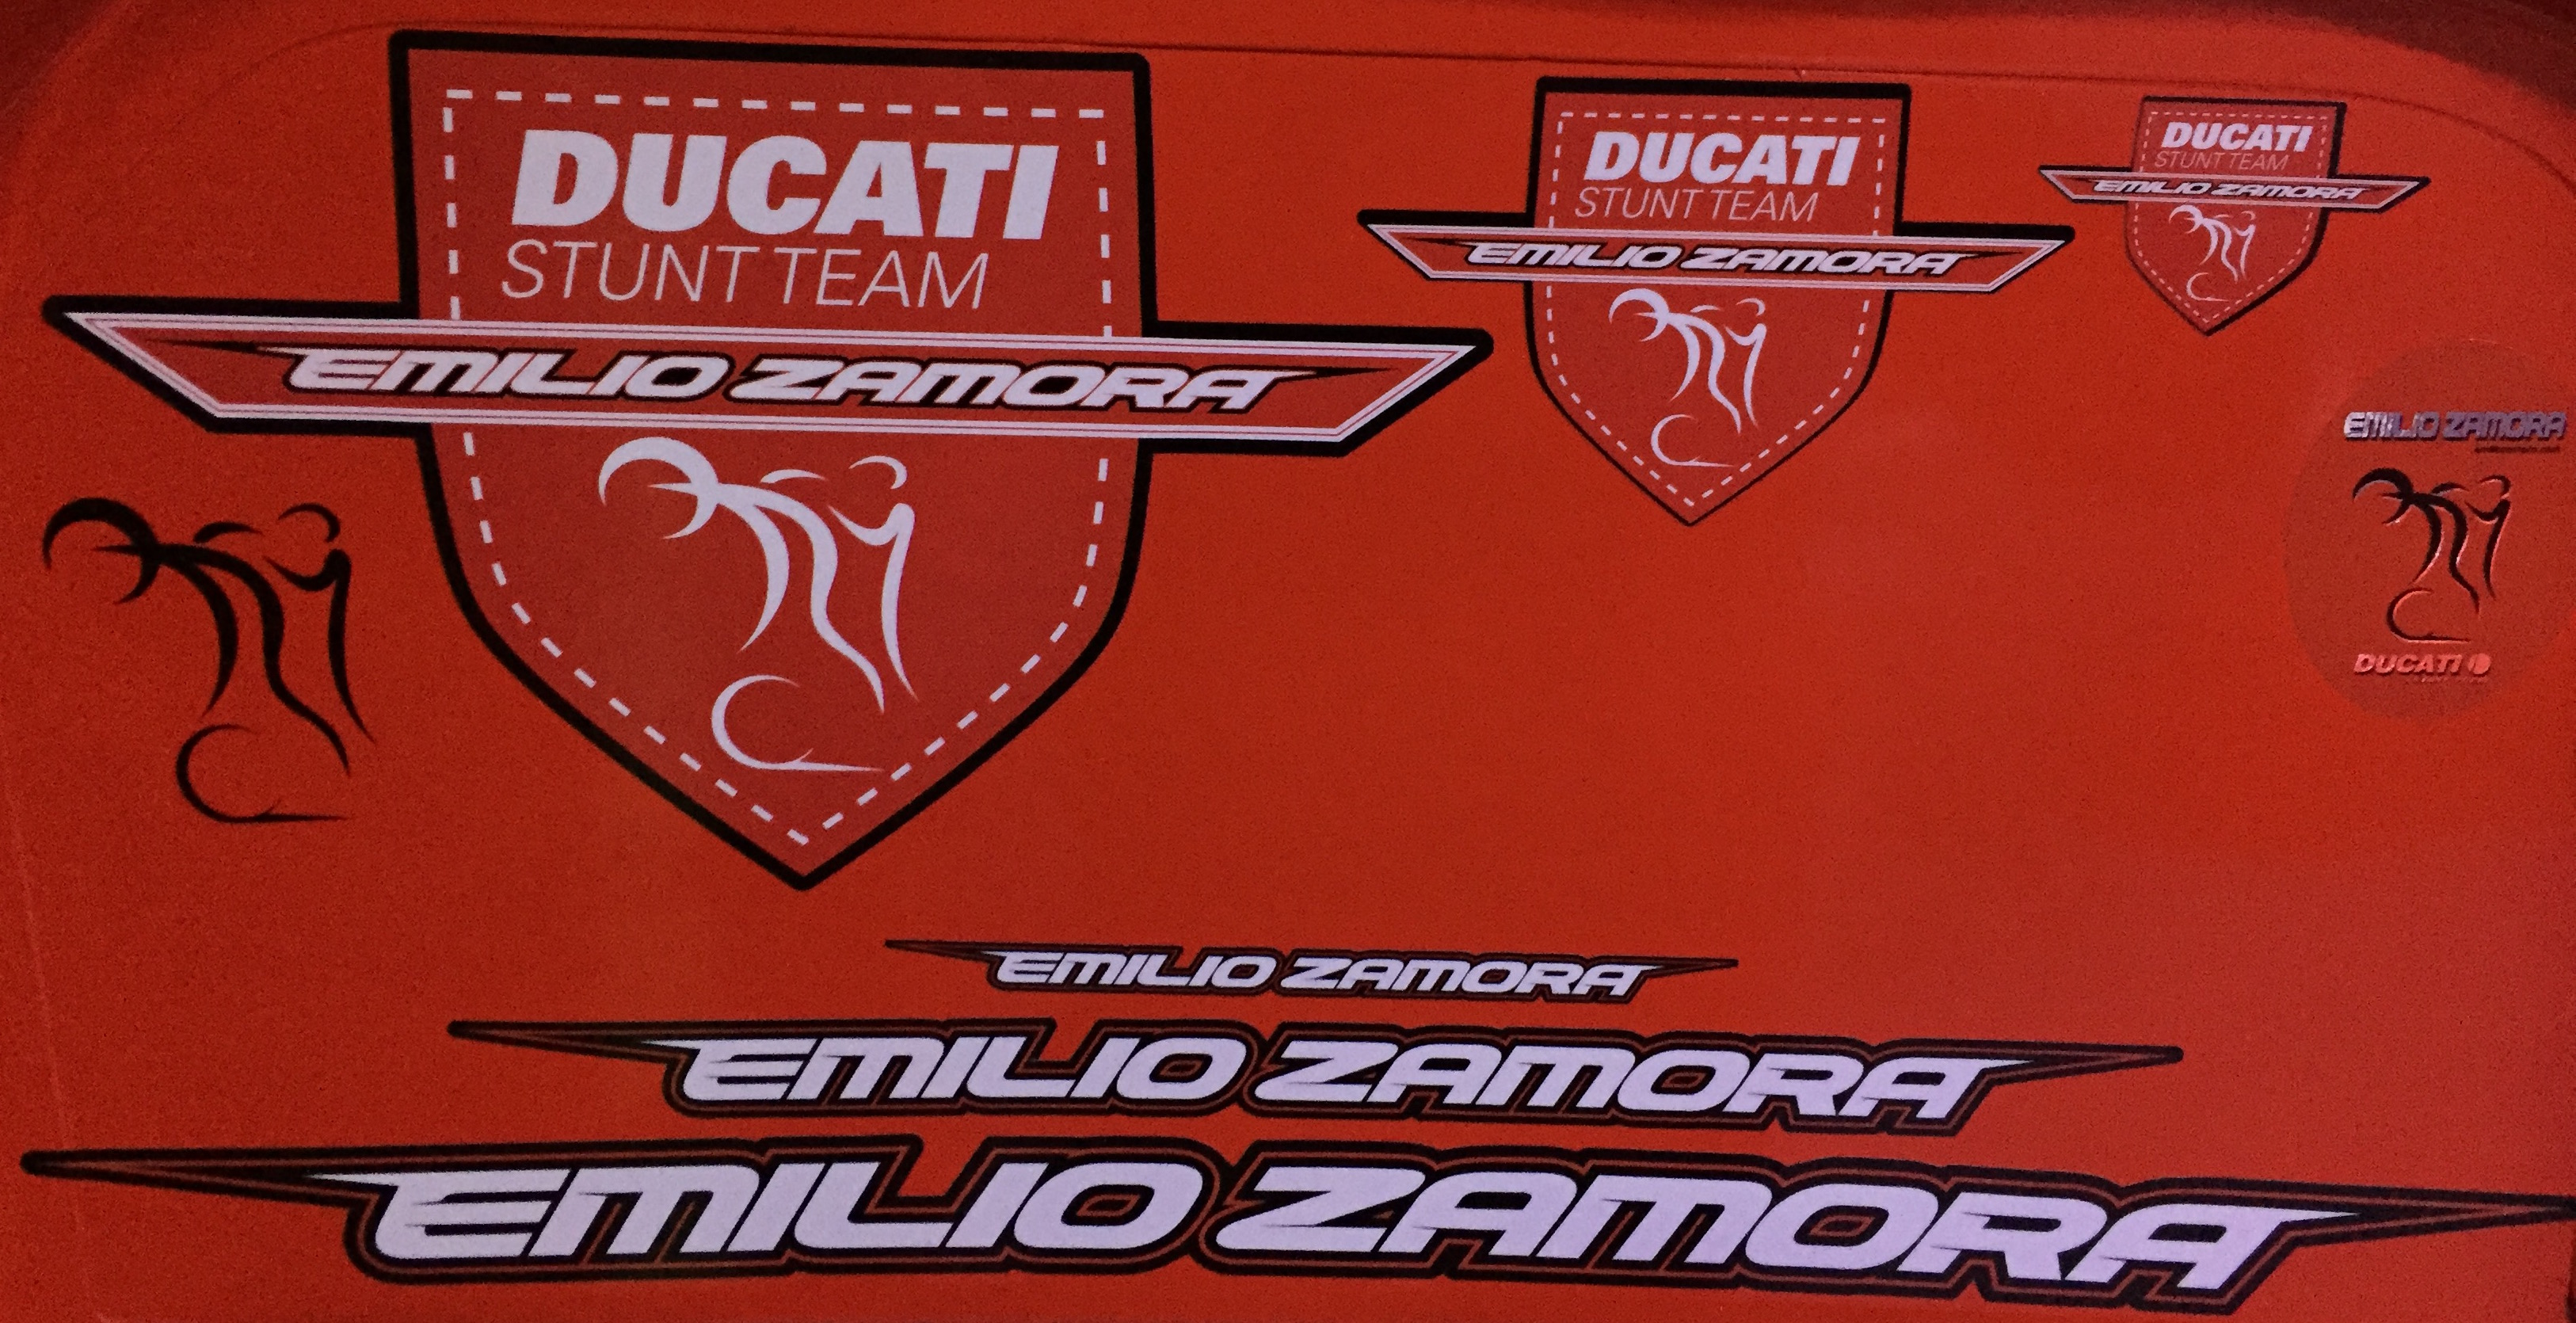 EMILIO_ZAMORA_DUCATI_STUNT_TEAM_STIKERS_KIT_MOTORCYCLE_MOTORBIKE_2017